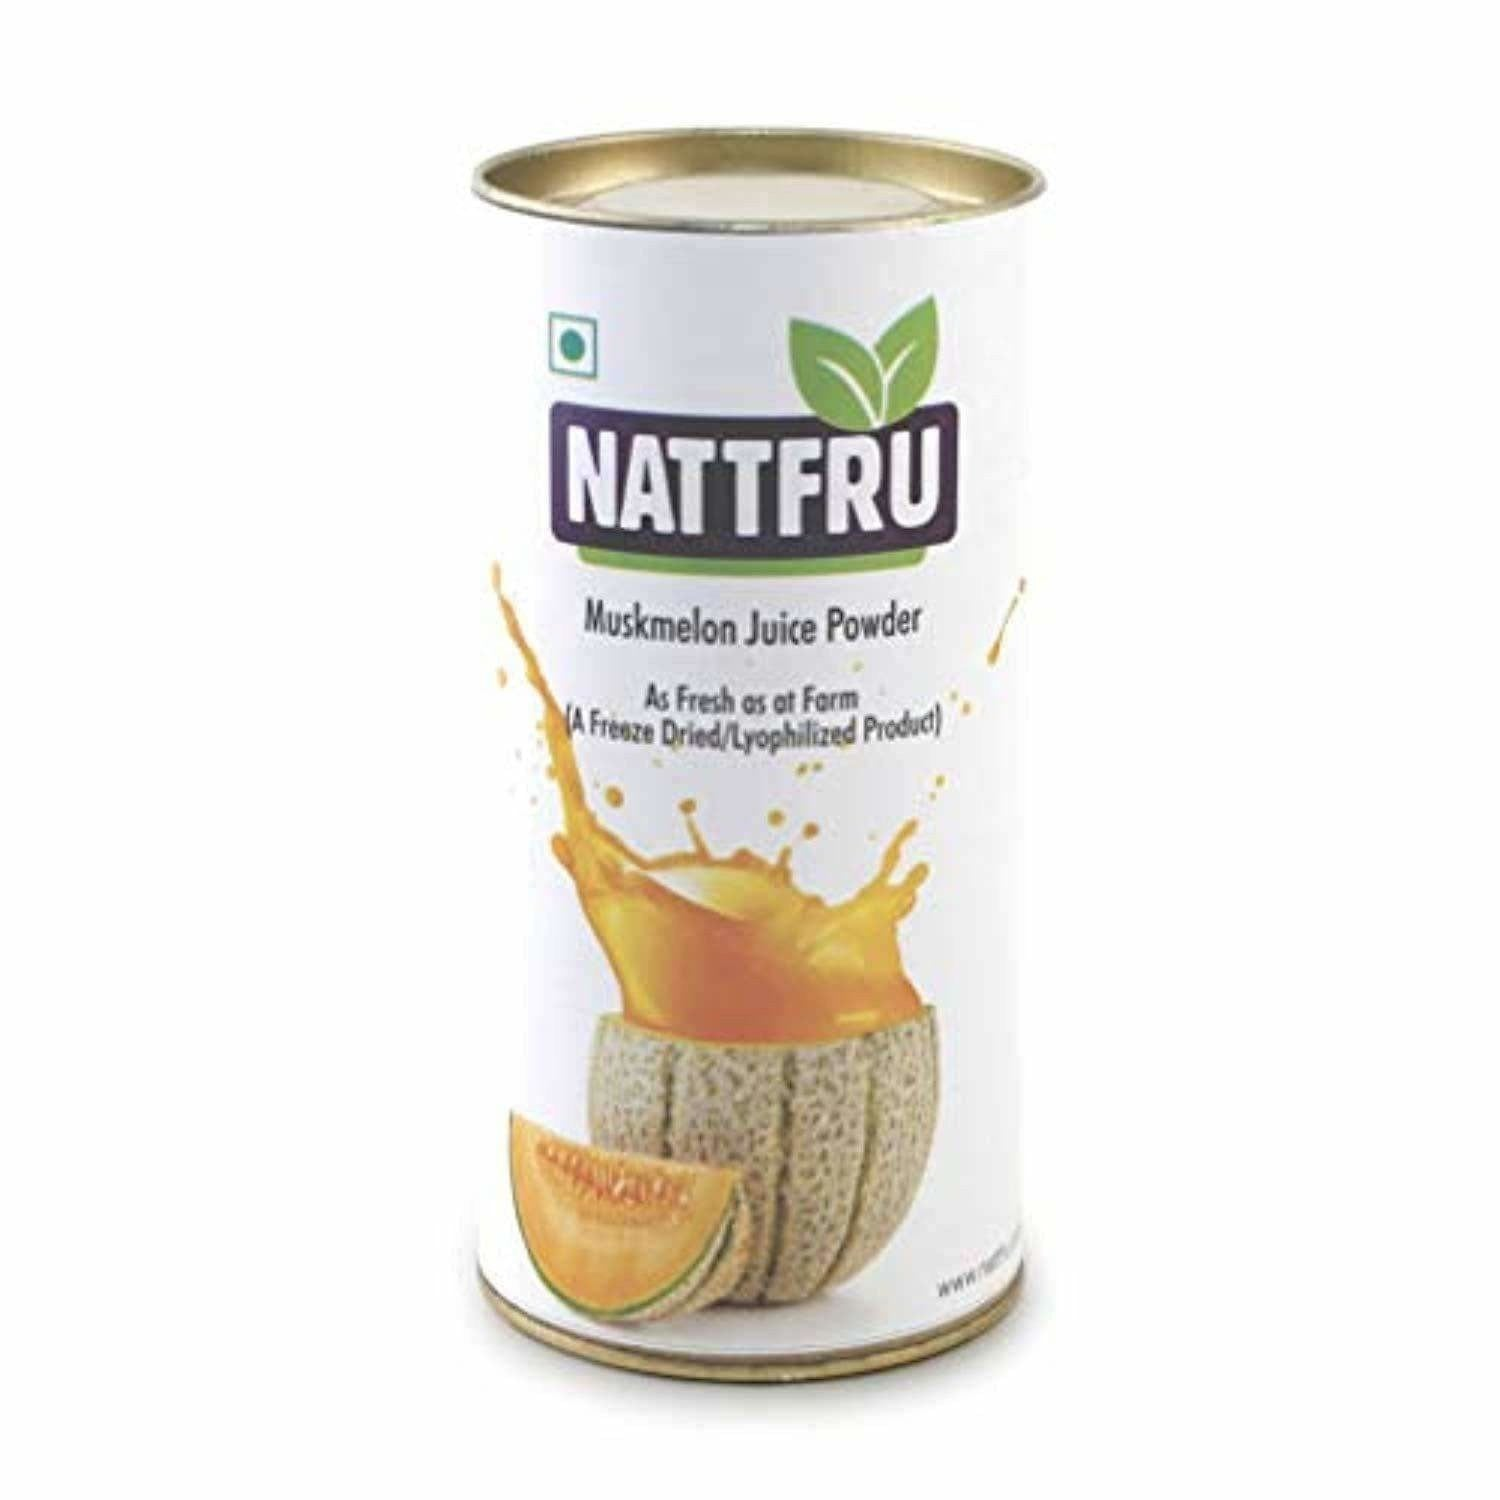 Nattfru Muskmelon Juice Powder - 90g (3 Packs X 30g  each- Inside)